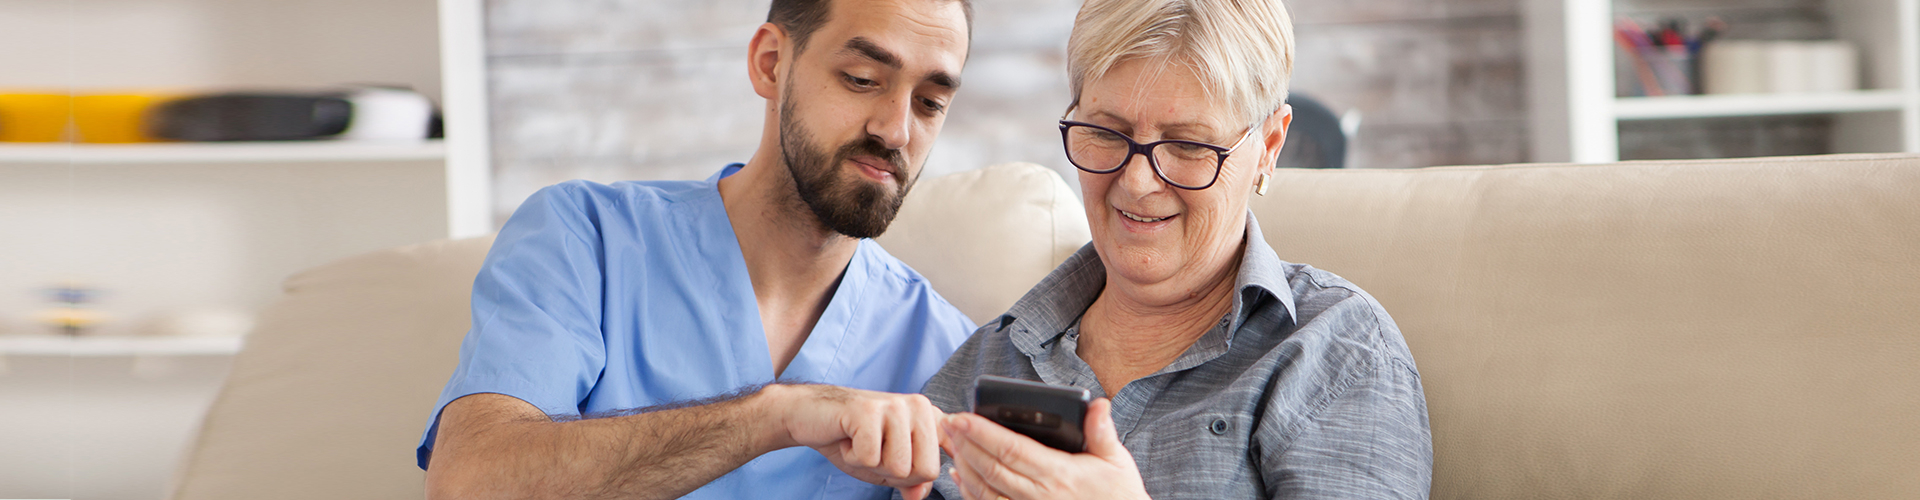 caregiver guiding a senior woman in using her phone